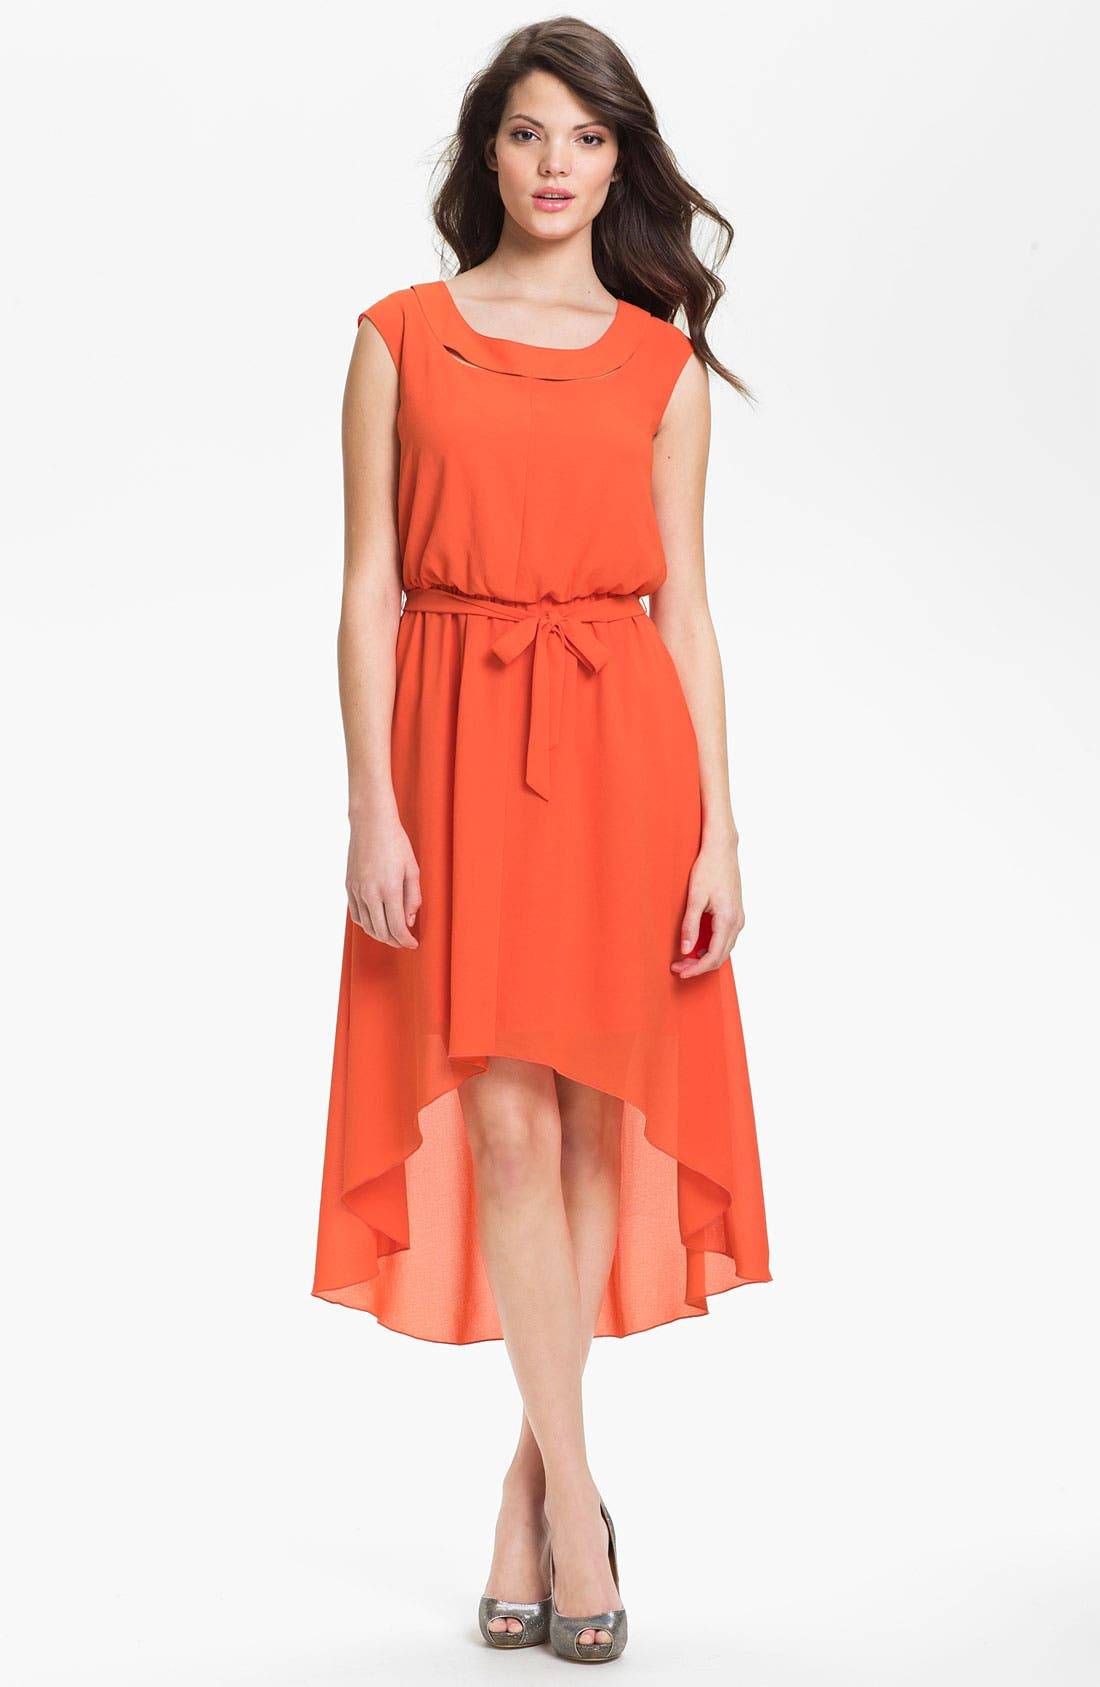 Alternate Image 1 Selected - Jessica Simpson Blouson High/Low Crepe Dress